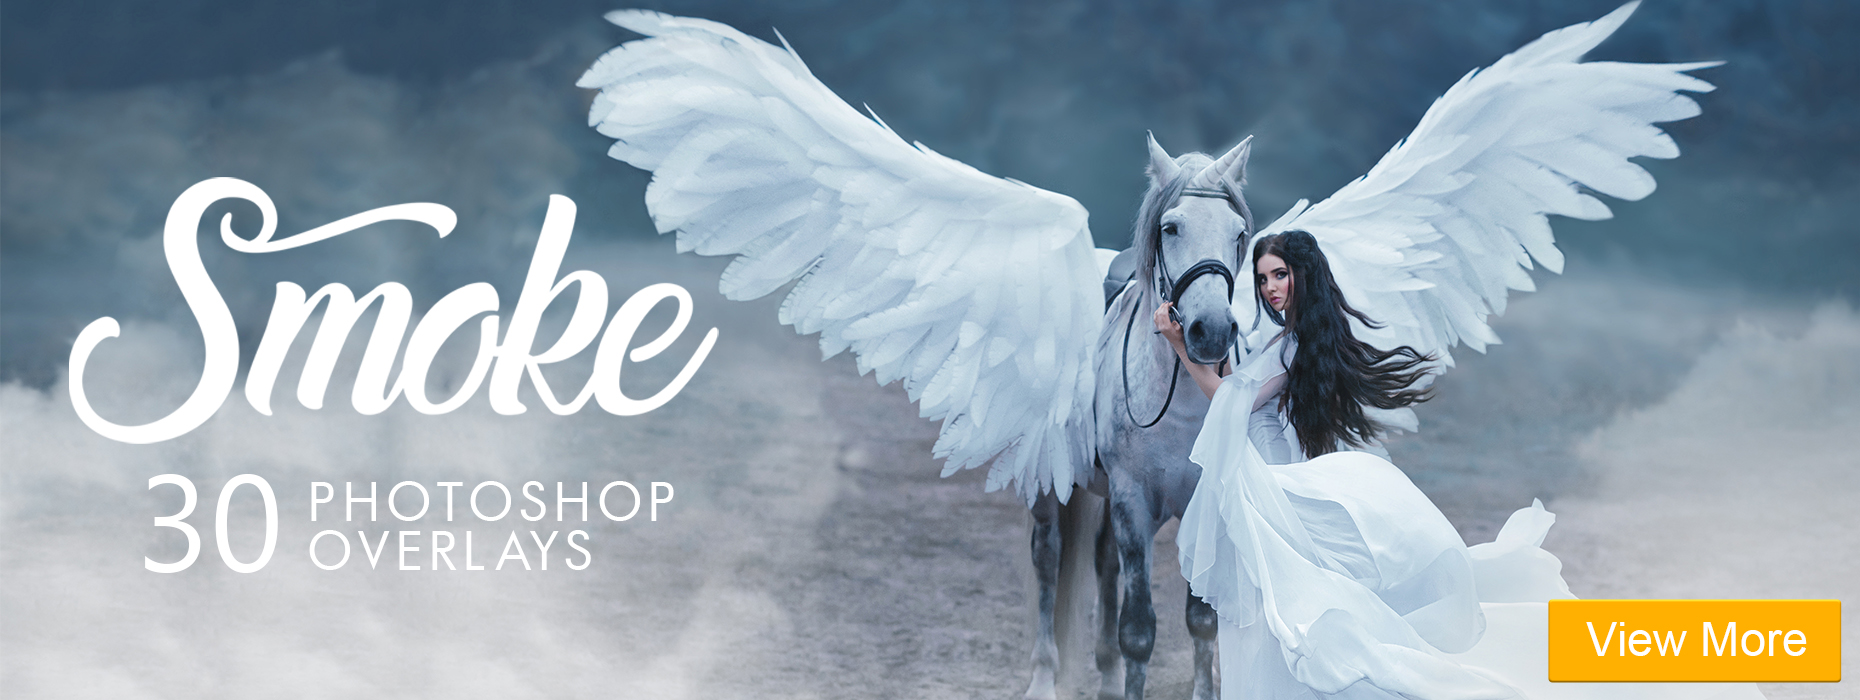 free fog overlays for photoshop smoke photoshop overlays banner girl and horse